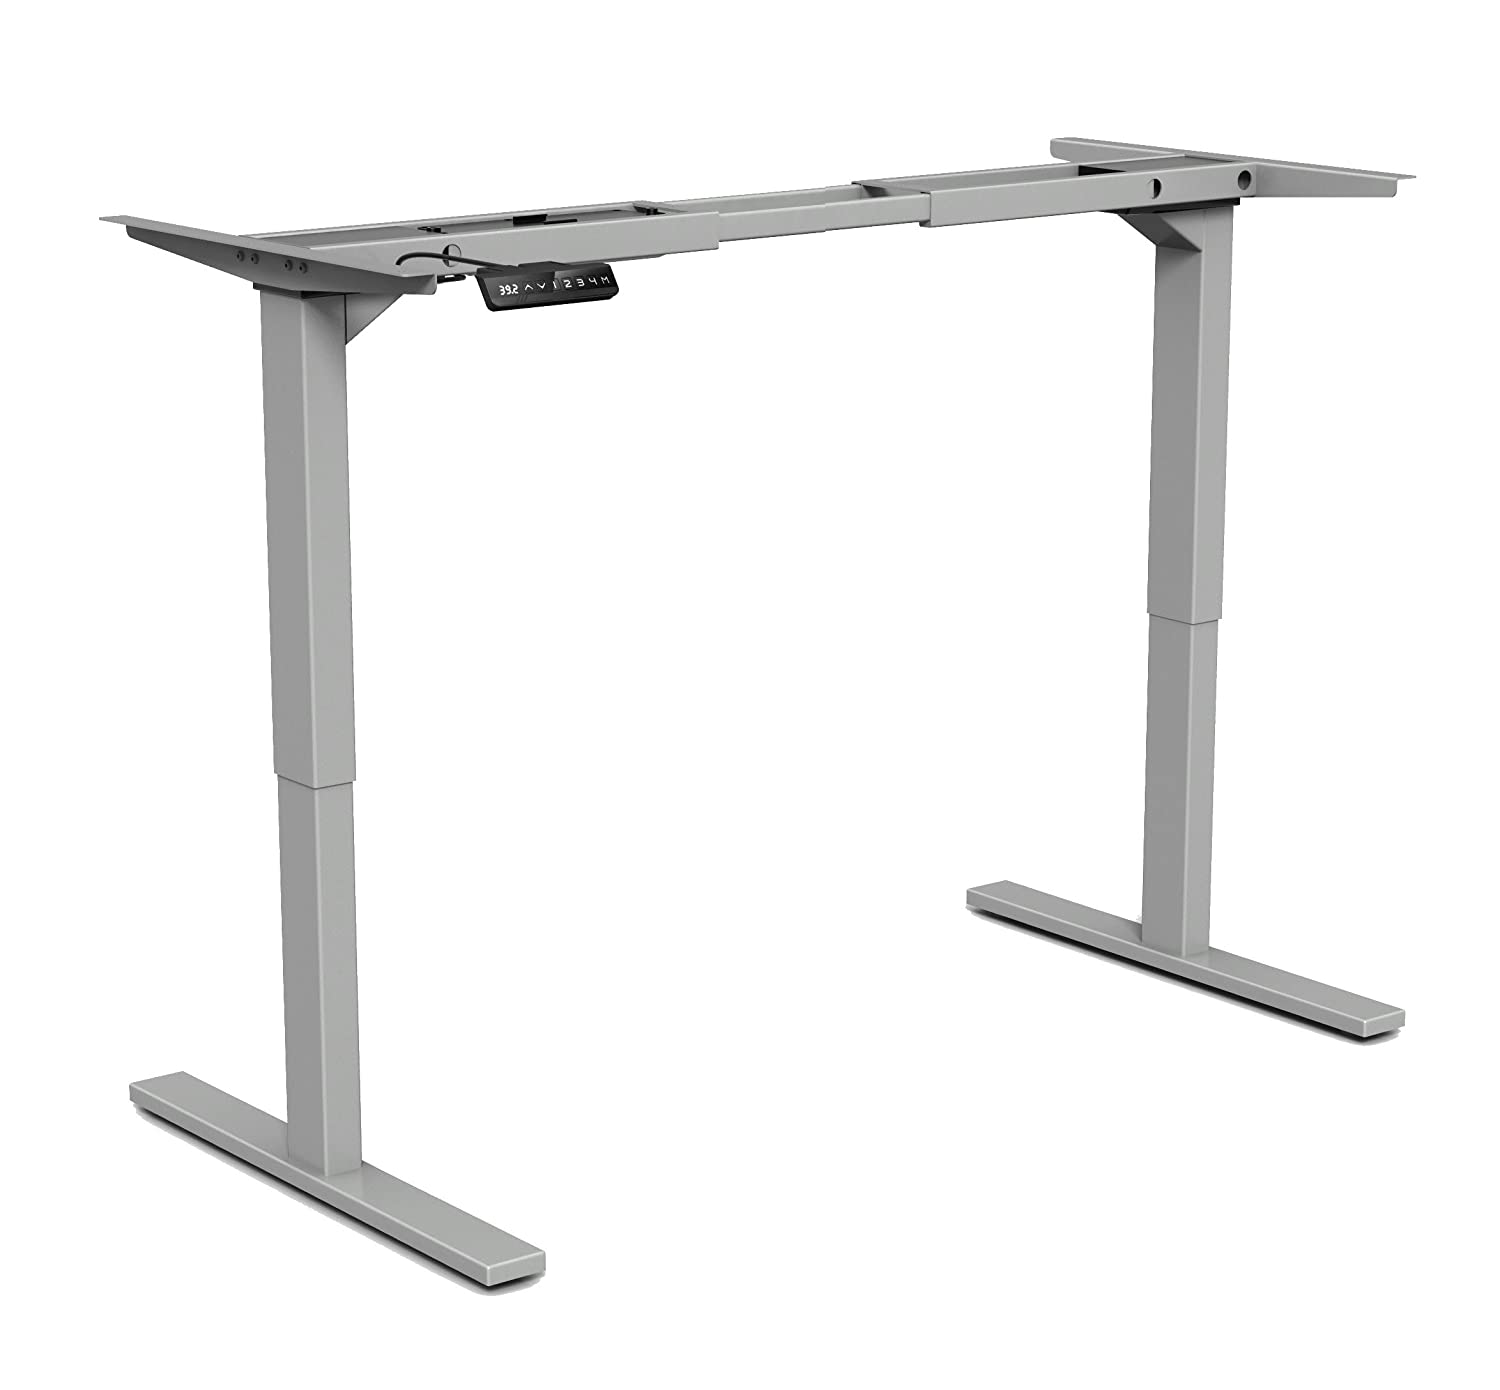 amazon silver base included manual only legs stand adjustable not dp top com workstation standing height down table up frame kitchen desk sit